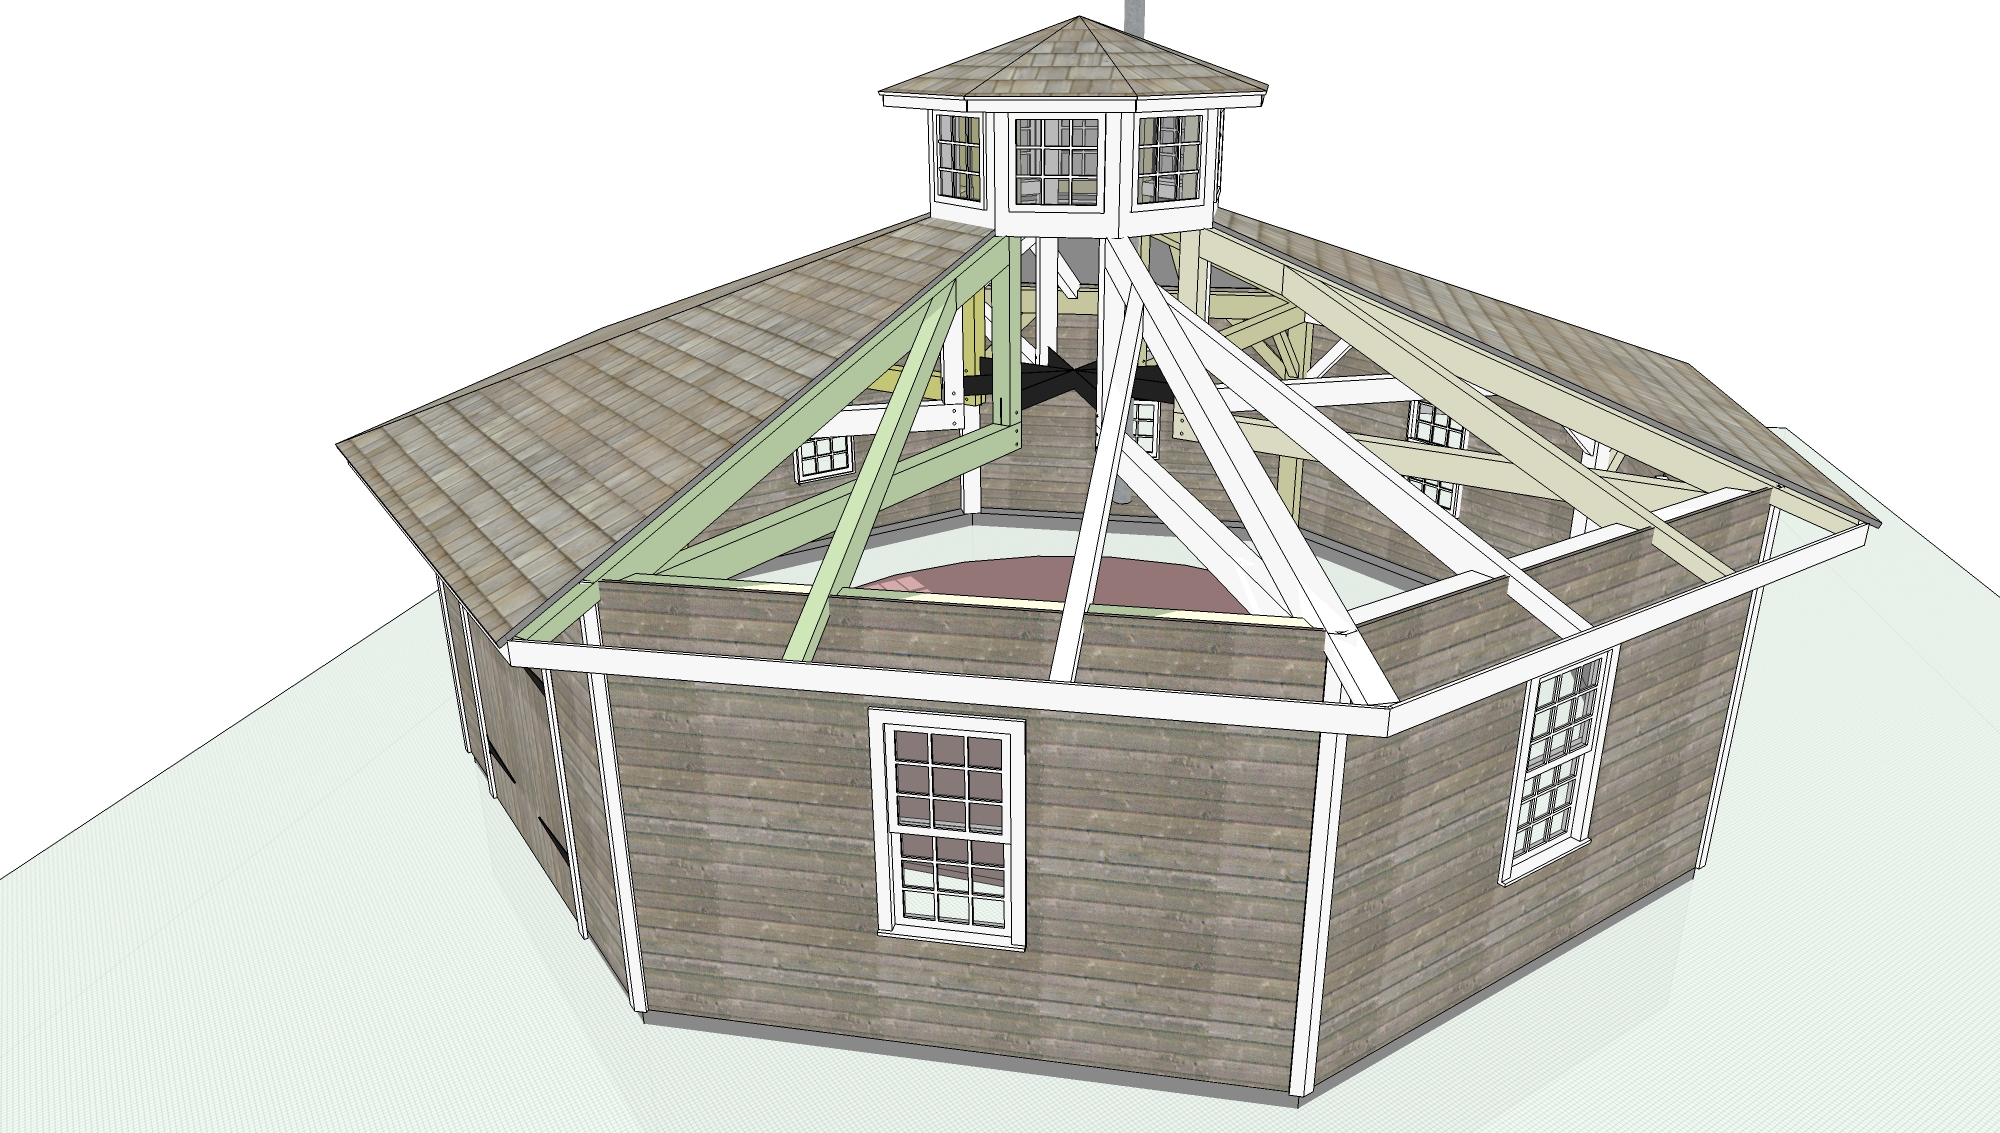 timber frame — Vermont Architect - Mutterings and Musings of a Rural